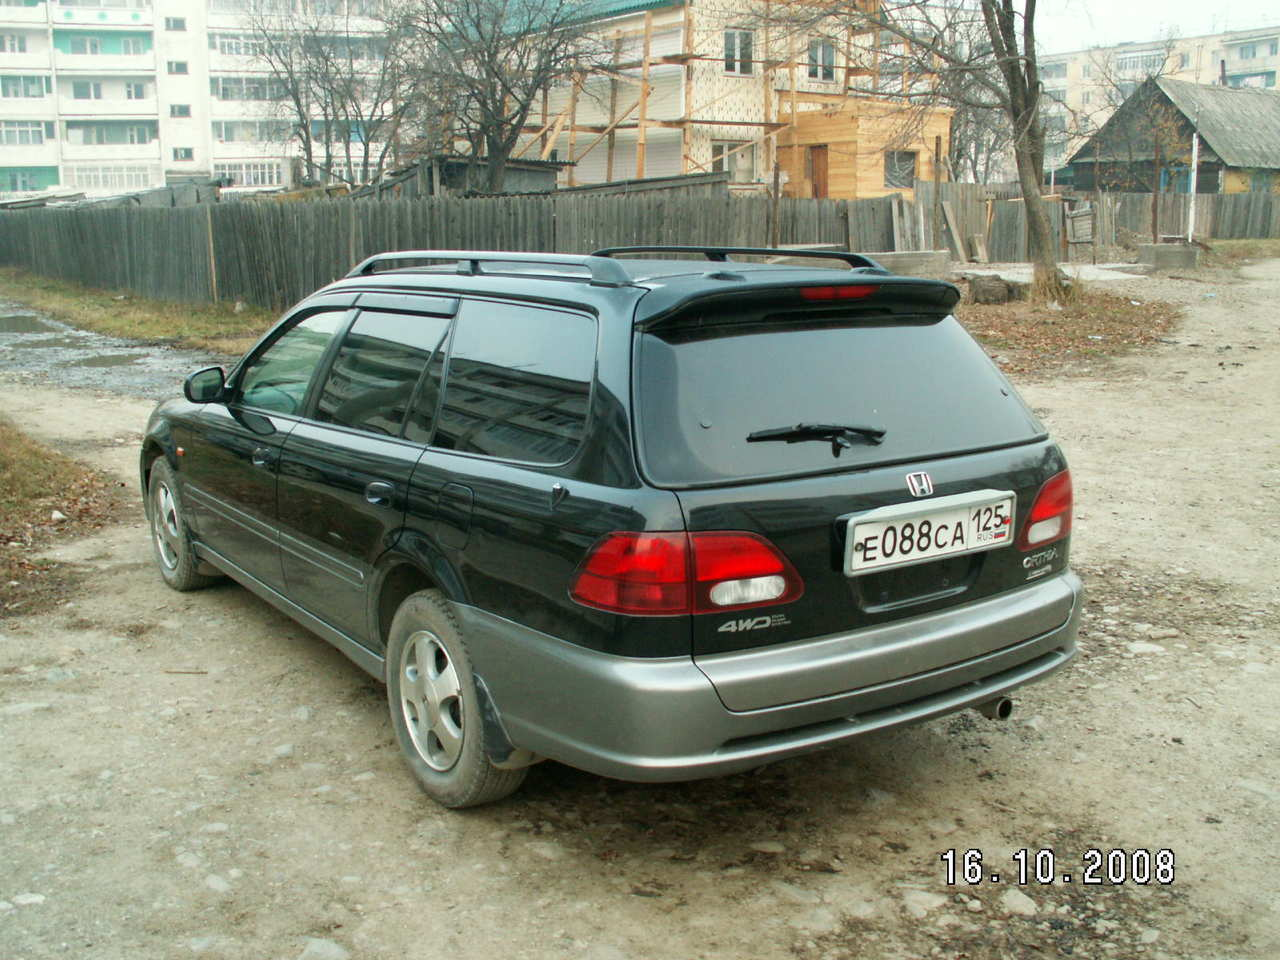 Used 2000 Honda Orthia Photos, 2000cc., Gasoline, Automatic For Sale